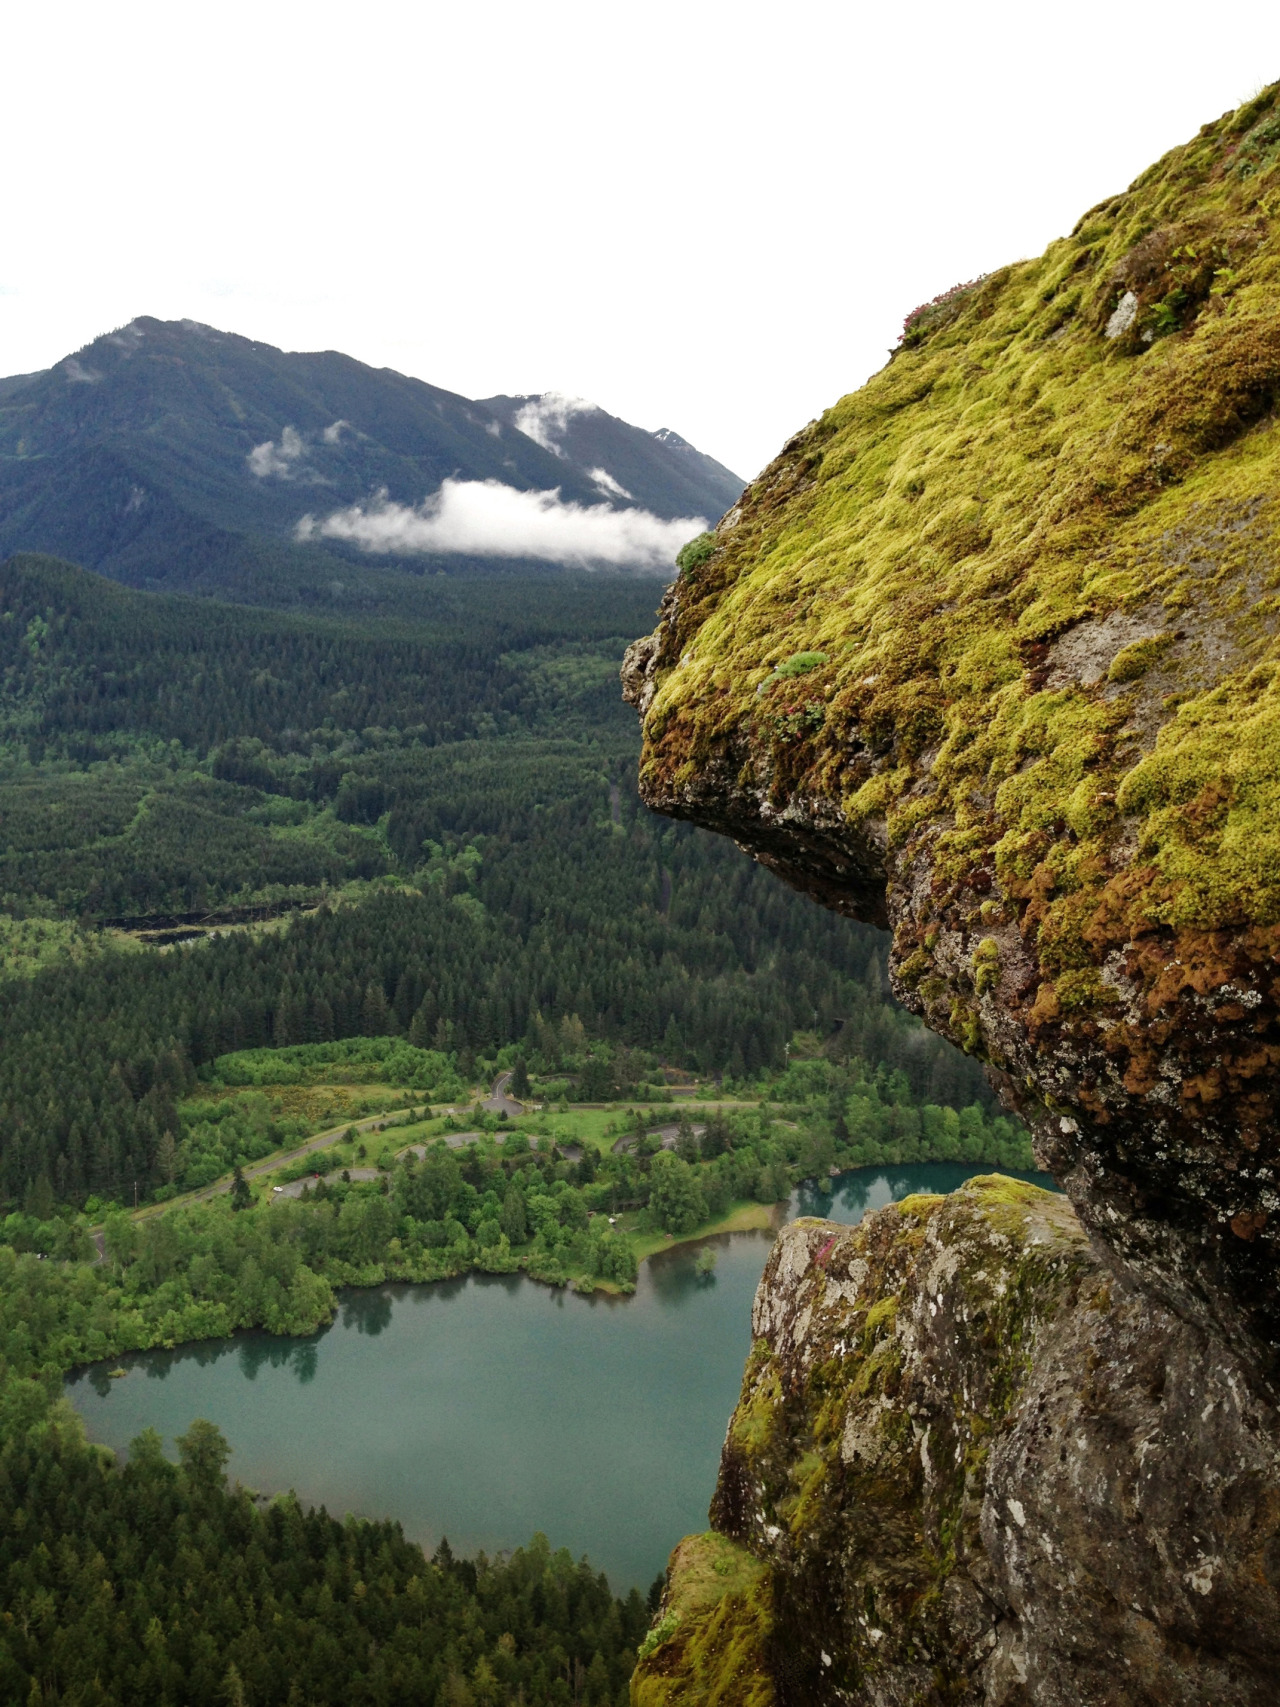 Up here, all the world's prizes seem nothing. Rattlesnake Ridge ― North Bend, WA